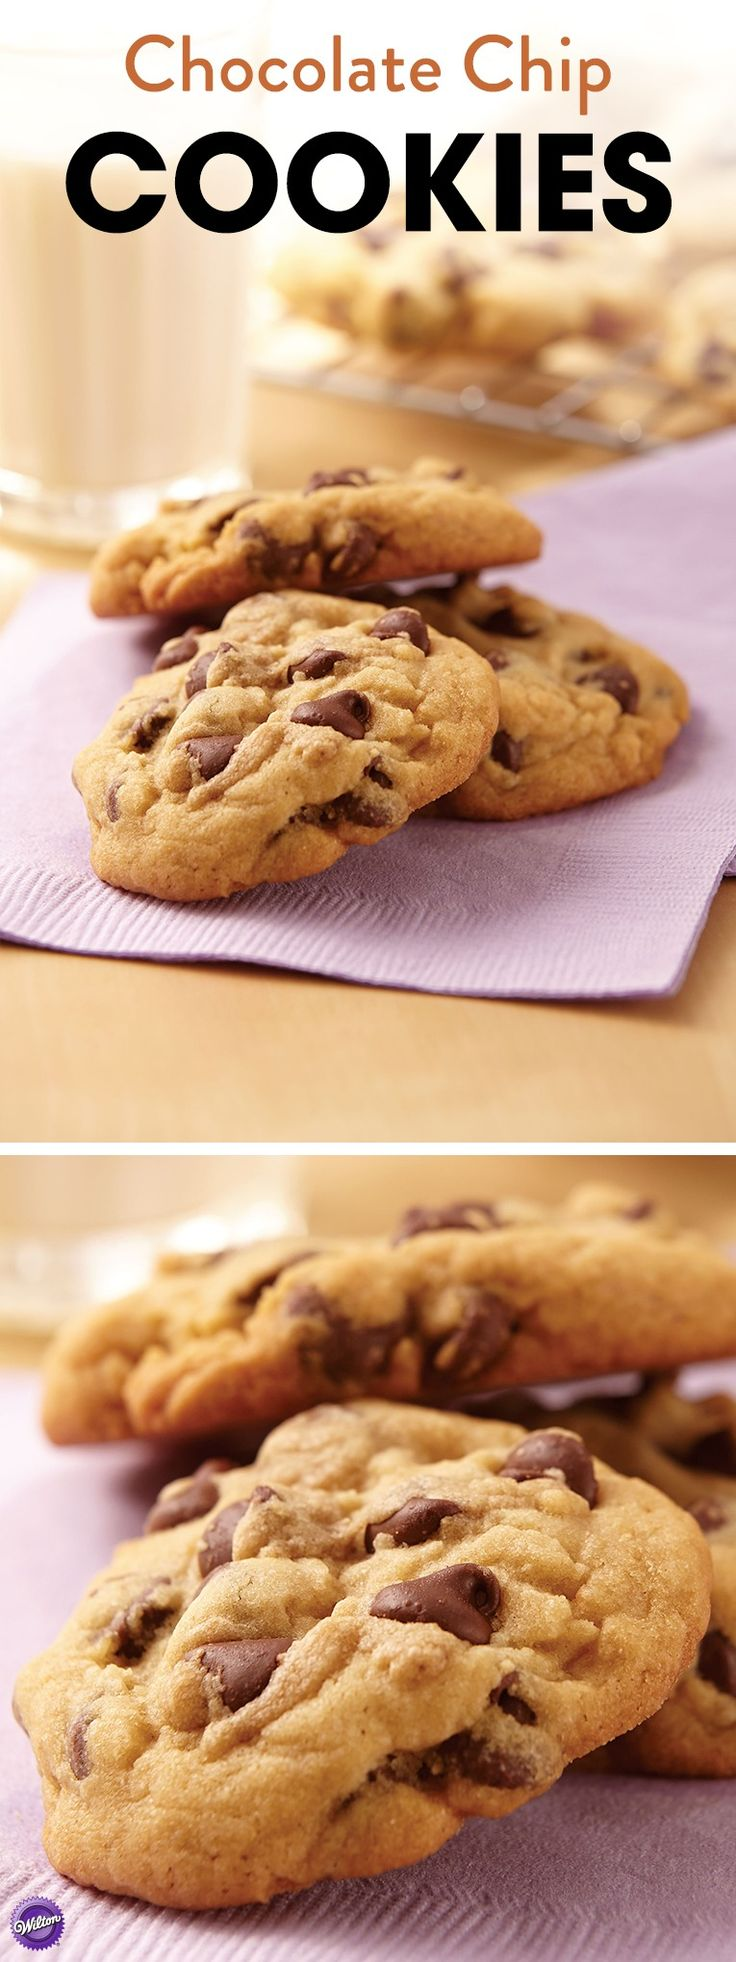 Nothing beats homemade chocolate chip cookies! Use this recipe to bake the most delicious and irresistible chocolate chip cookies.